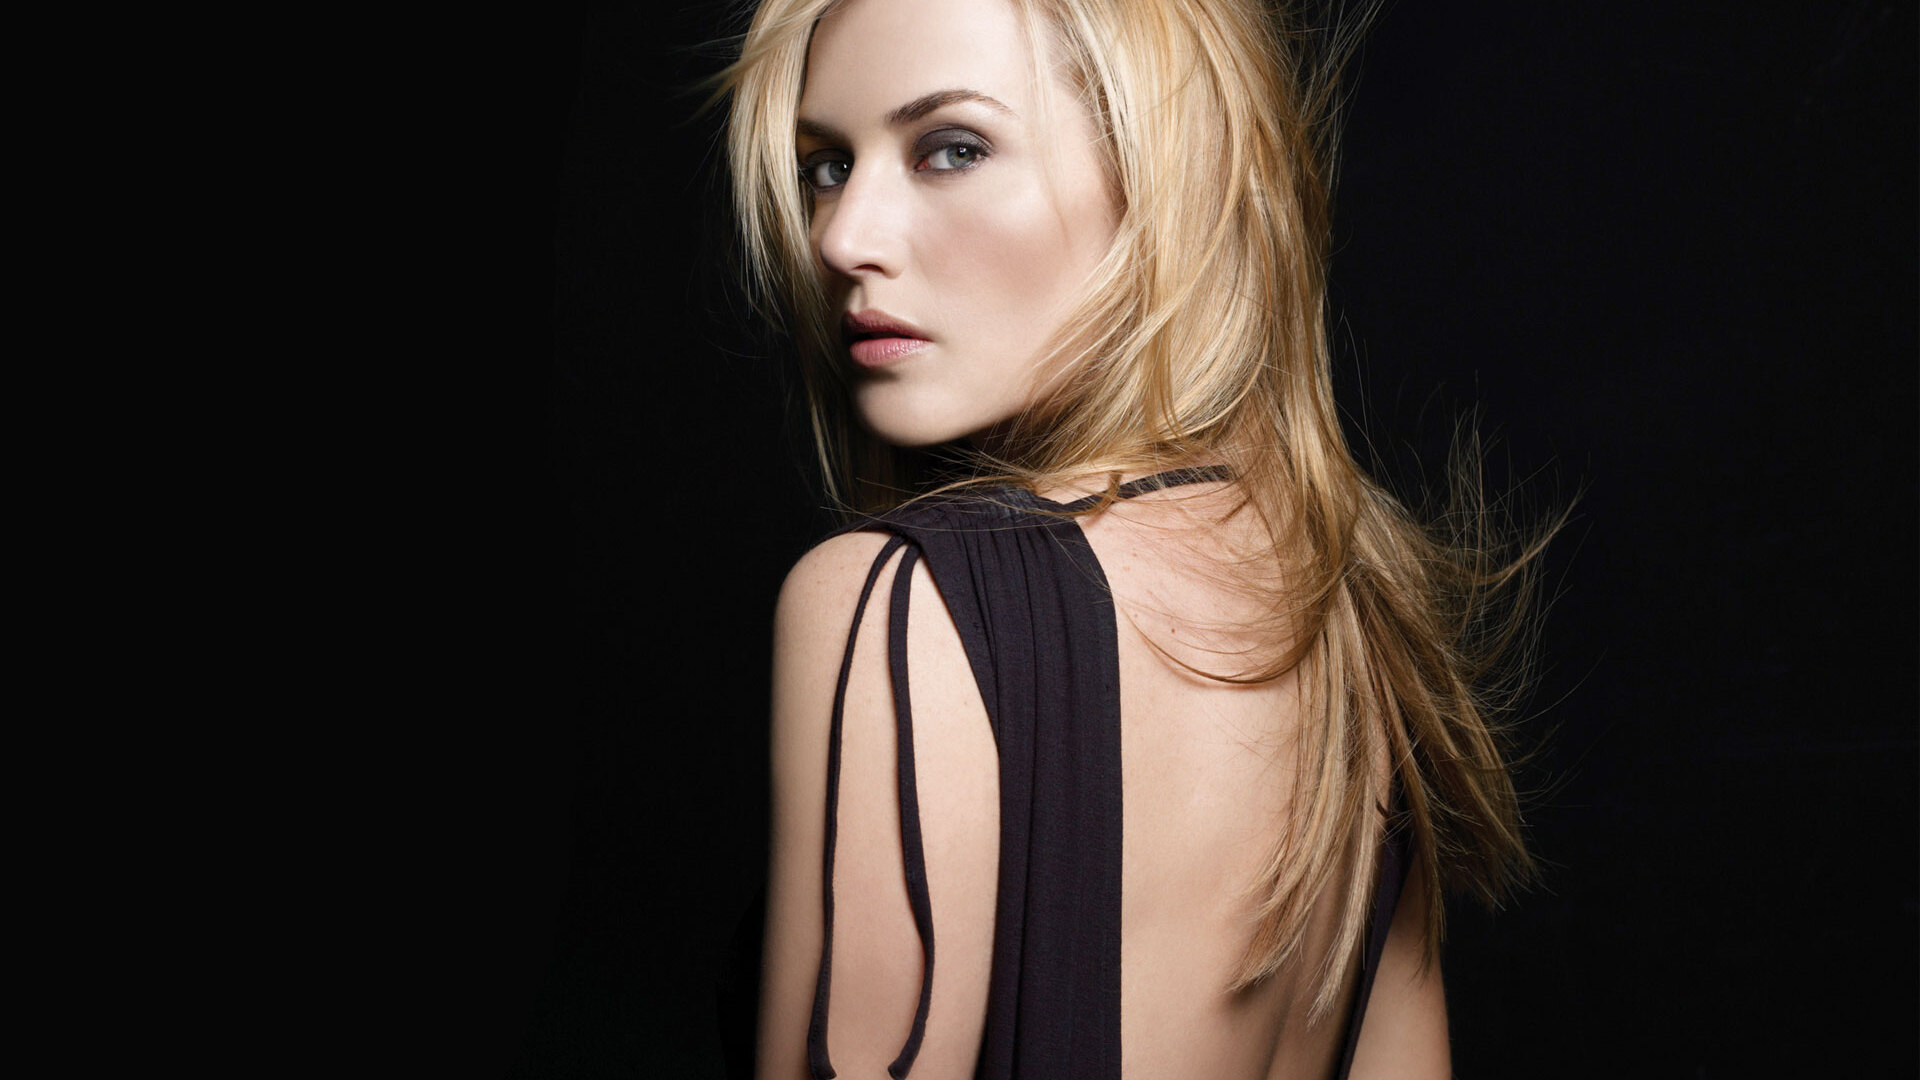 1920x1080 Kate Winslet Hot Laptop Full HD 1080P HD 4k Wallpapers, Images, Backgrounds, Photos ...